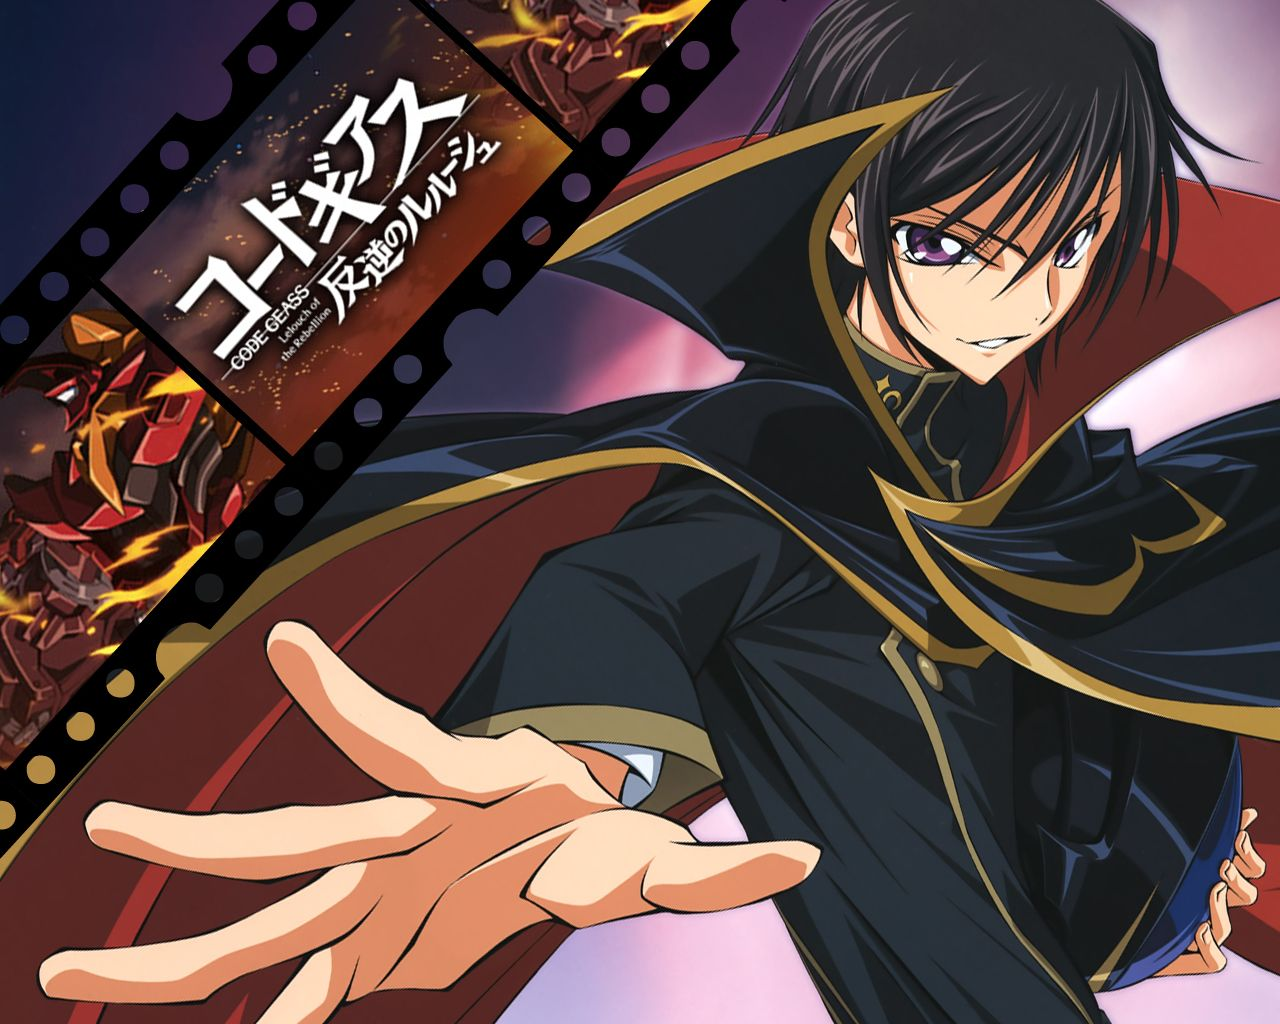 Konachan.com - 2999 cape code_geass lelouch_lamperouge